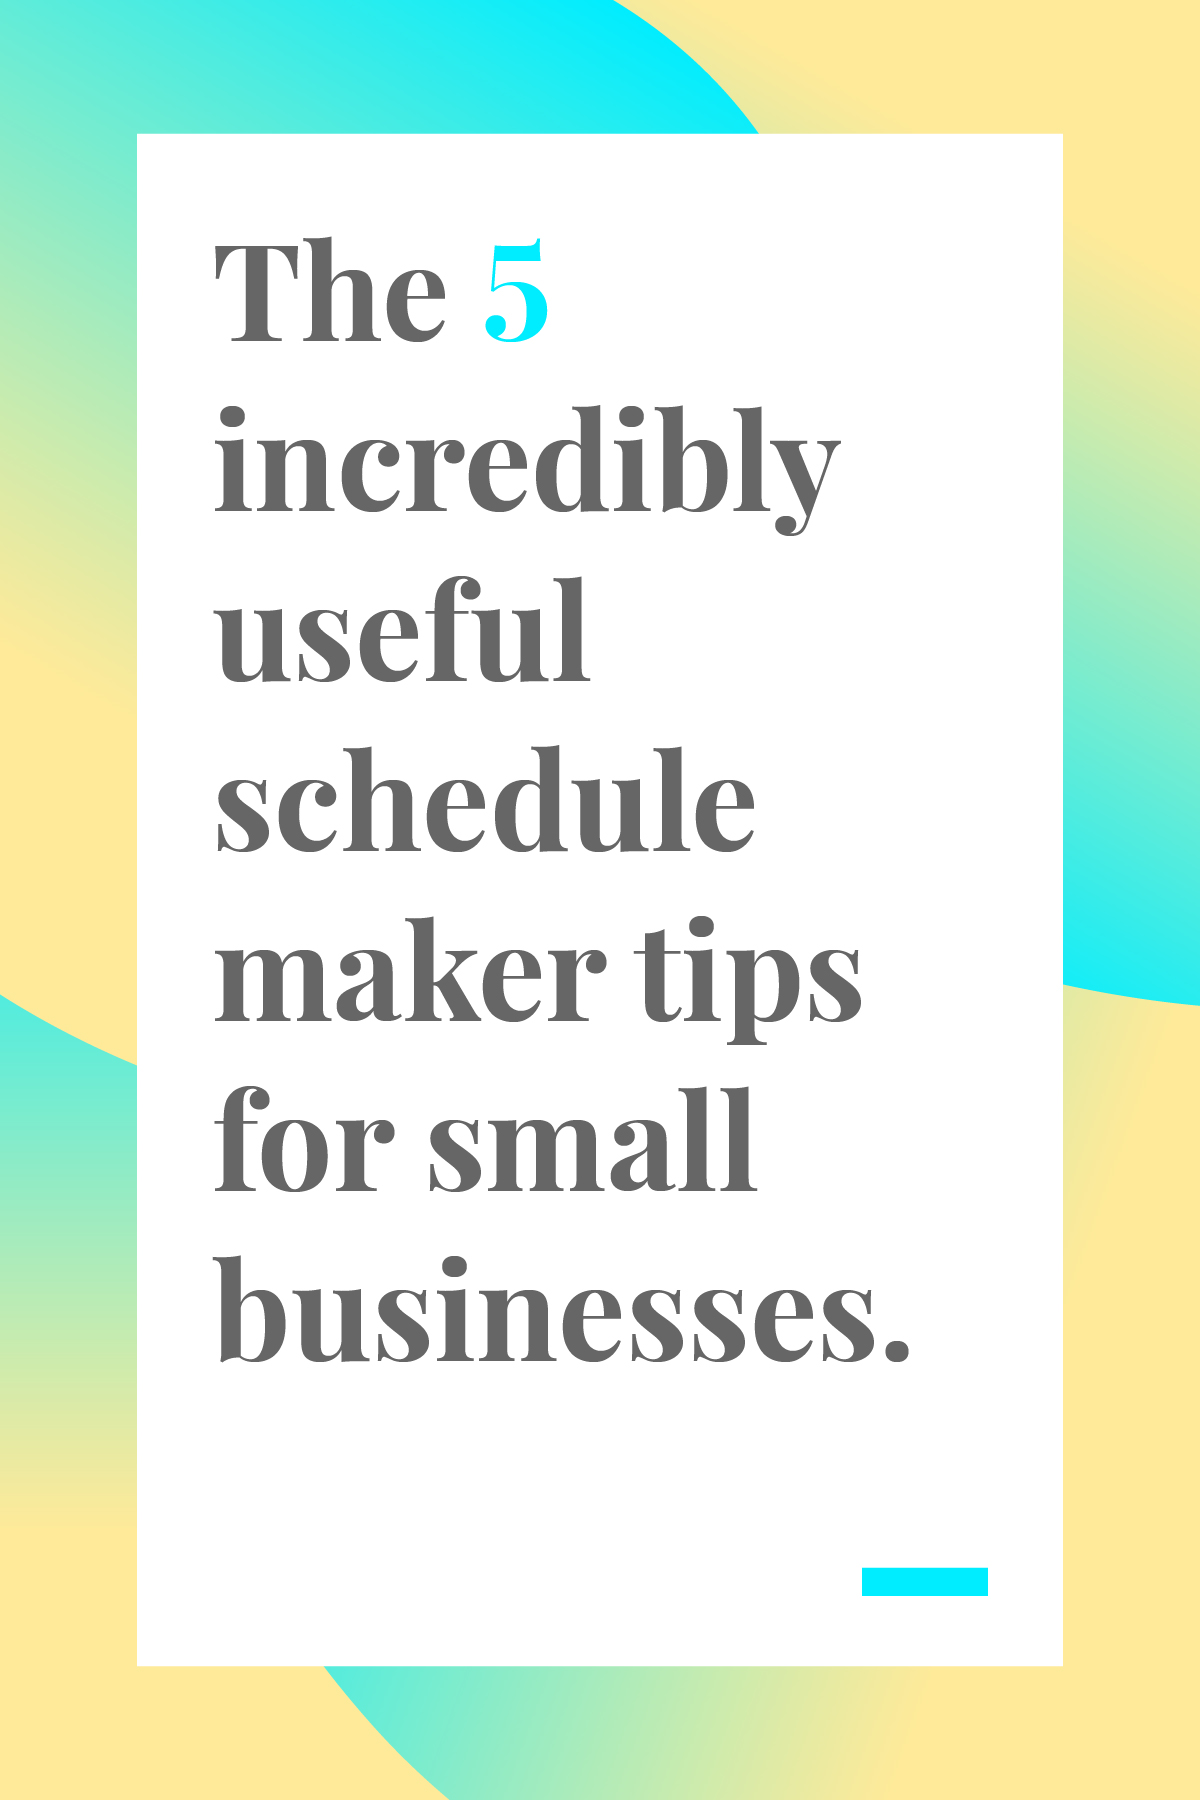 If you need to make a schedule for your small business or team, these schedule maker tips will help you manage everyone's time and get the big picture overview for all your projects. #timemanagement #productivity